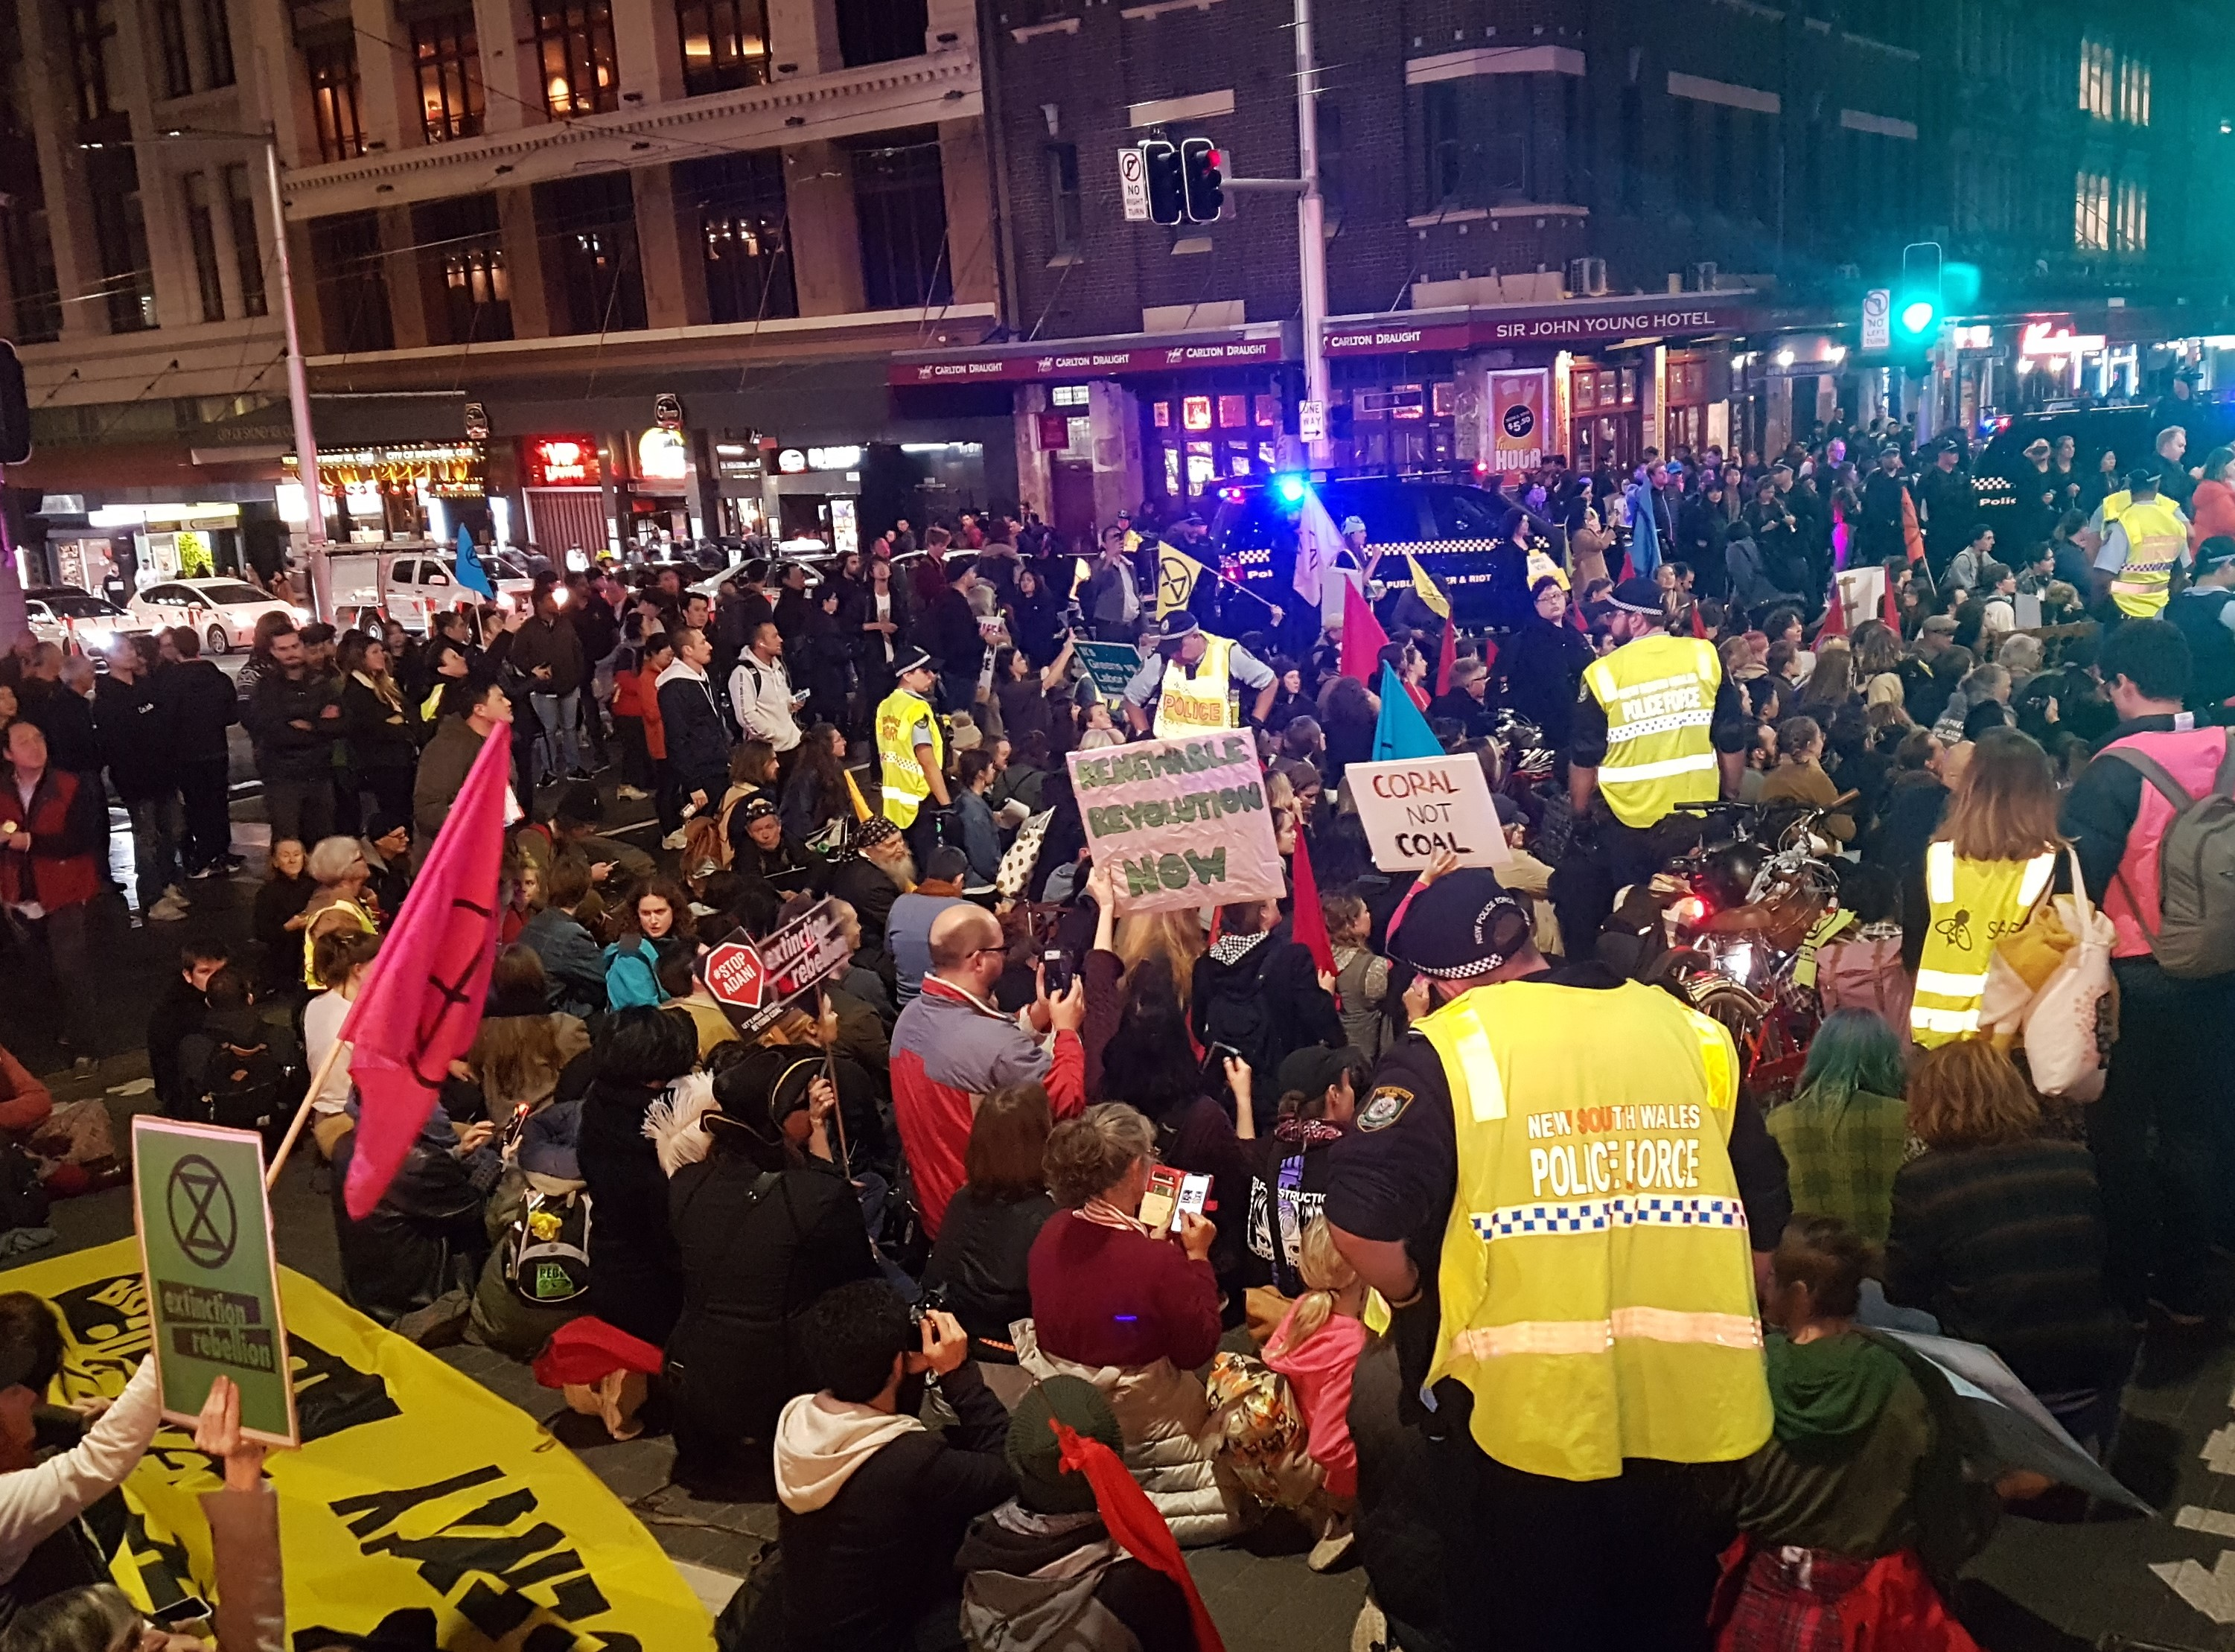 Activists sit down on the road at the intersections of George St and Liverpool St.